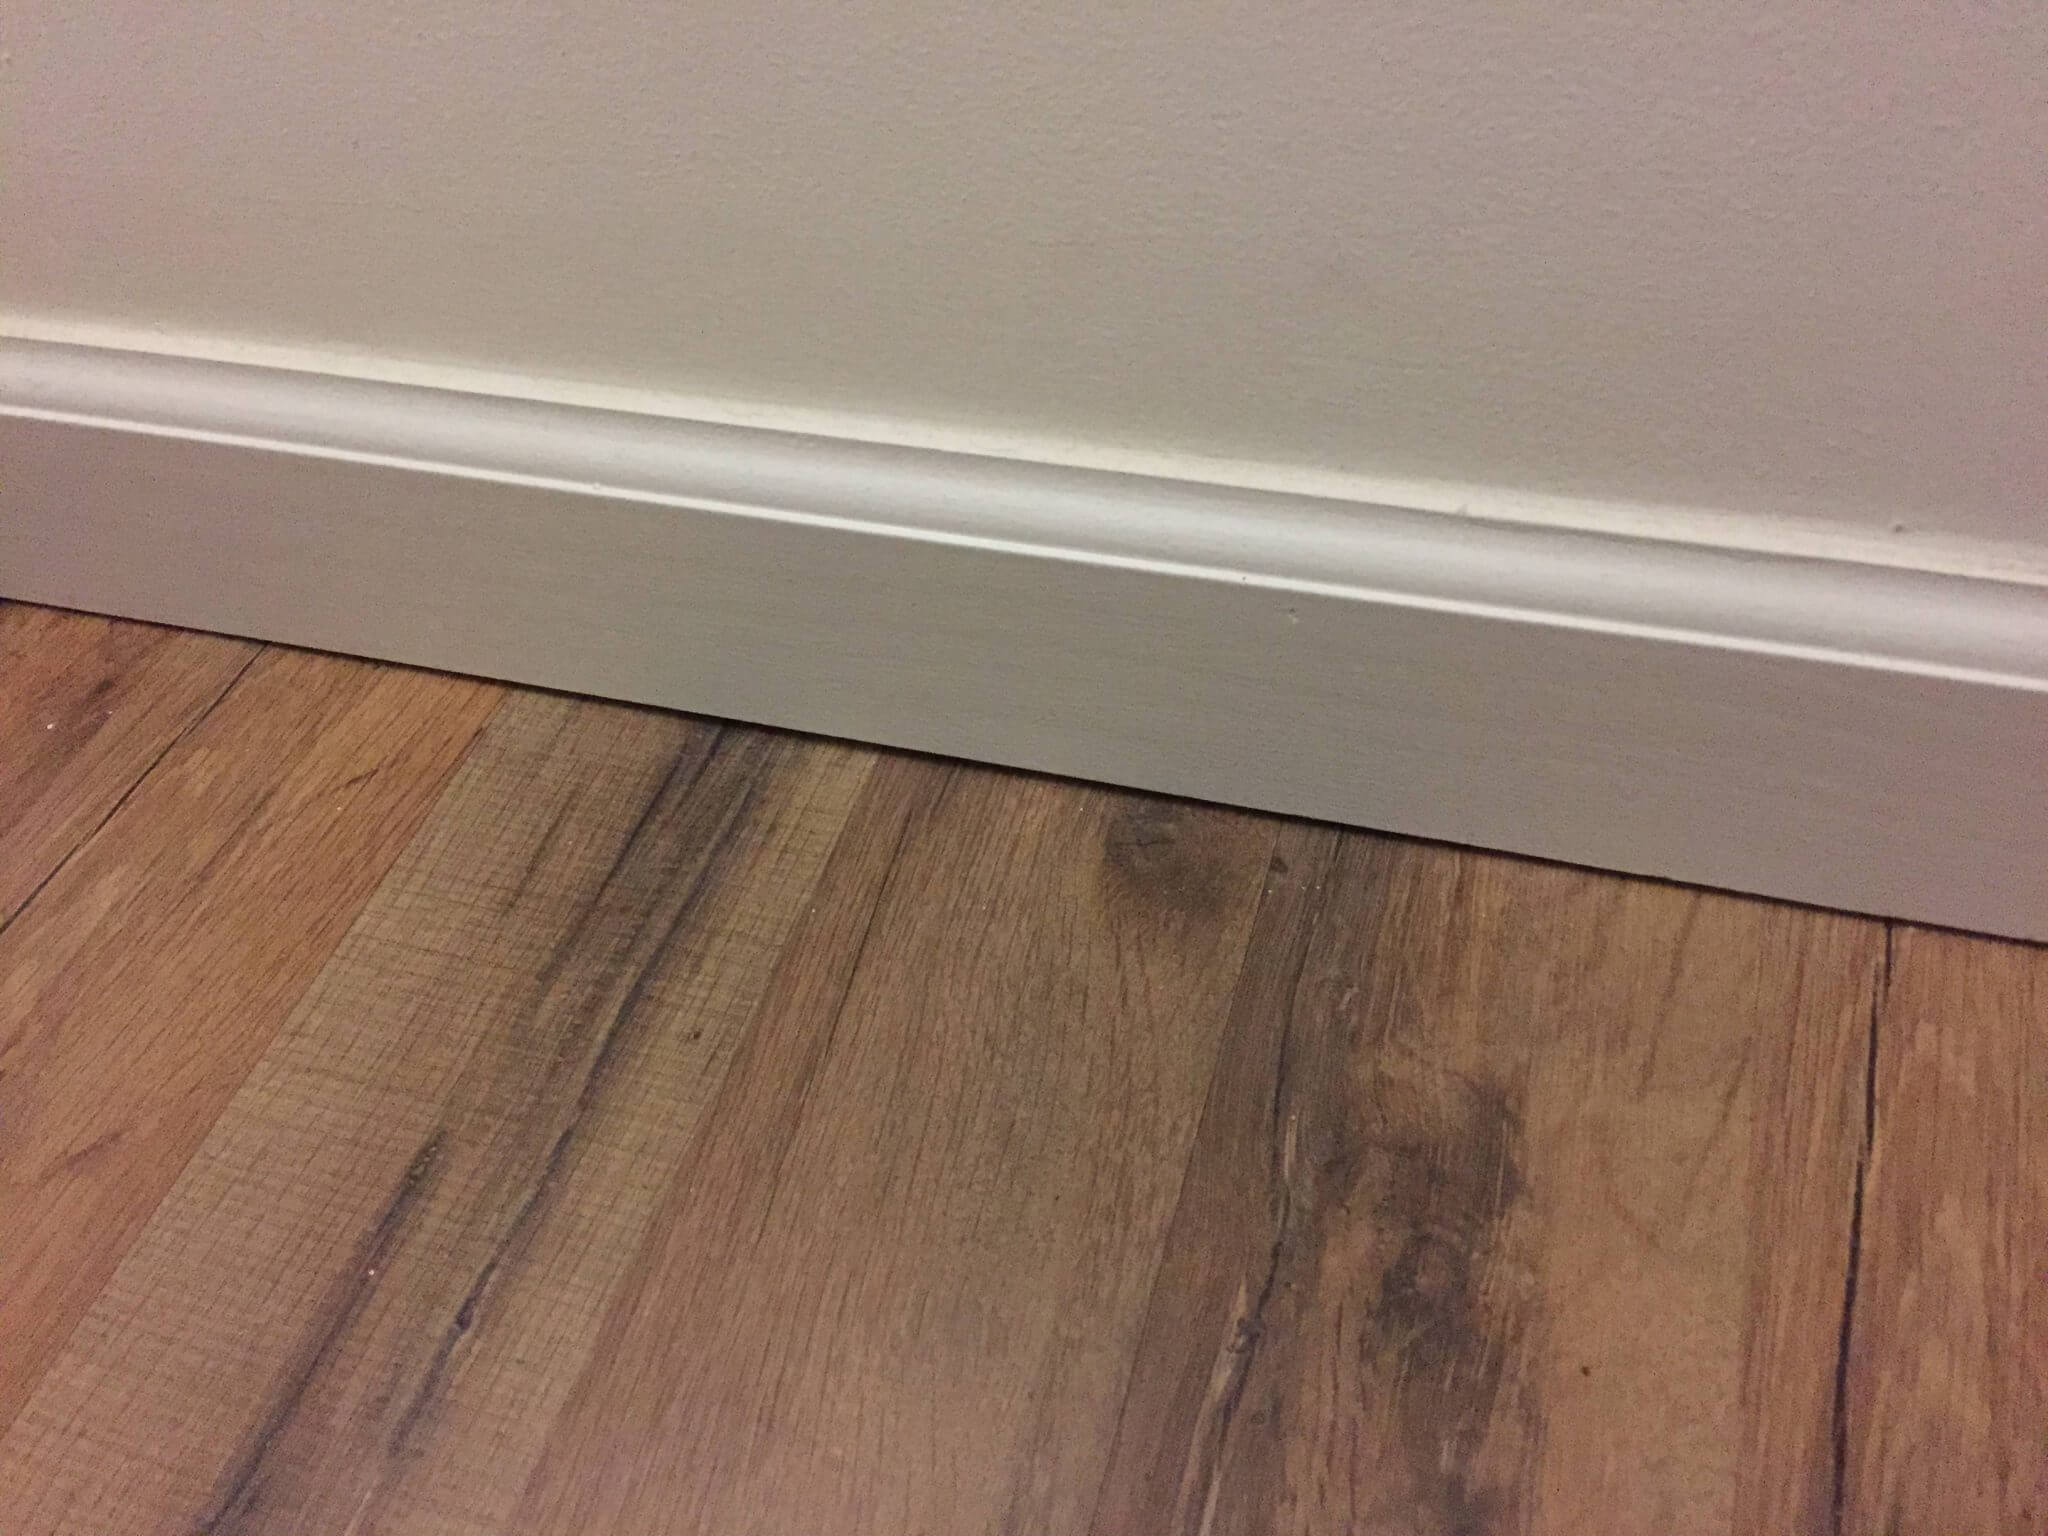 baseboard gaps - Home Improvement DIY Tips for Quarter Round Molding